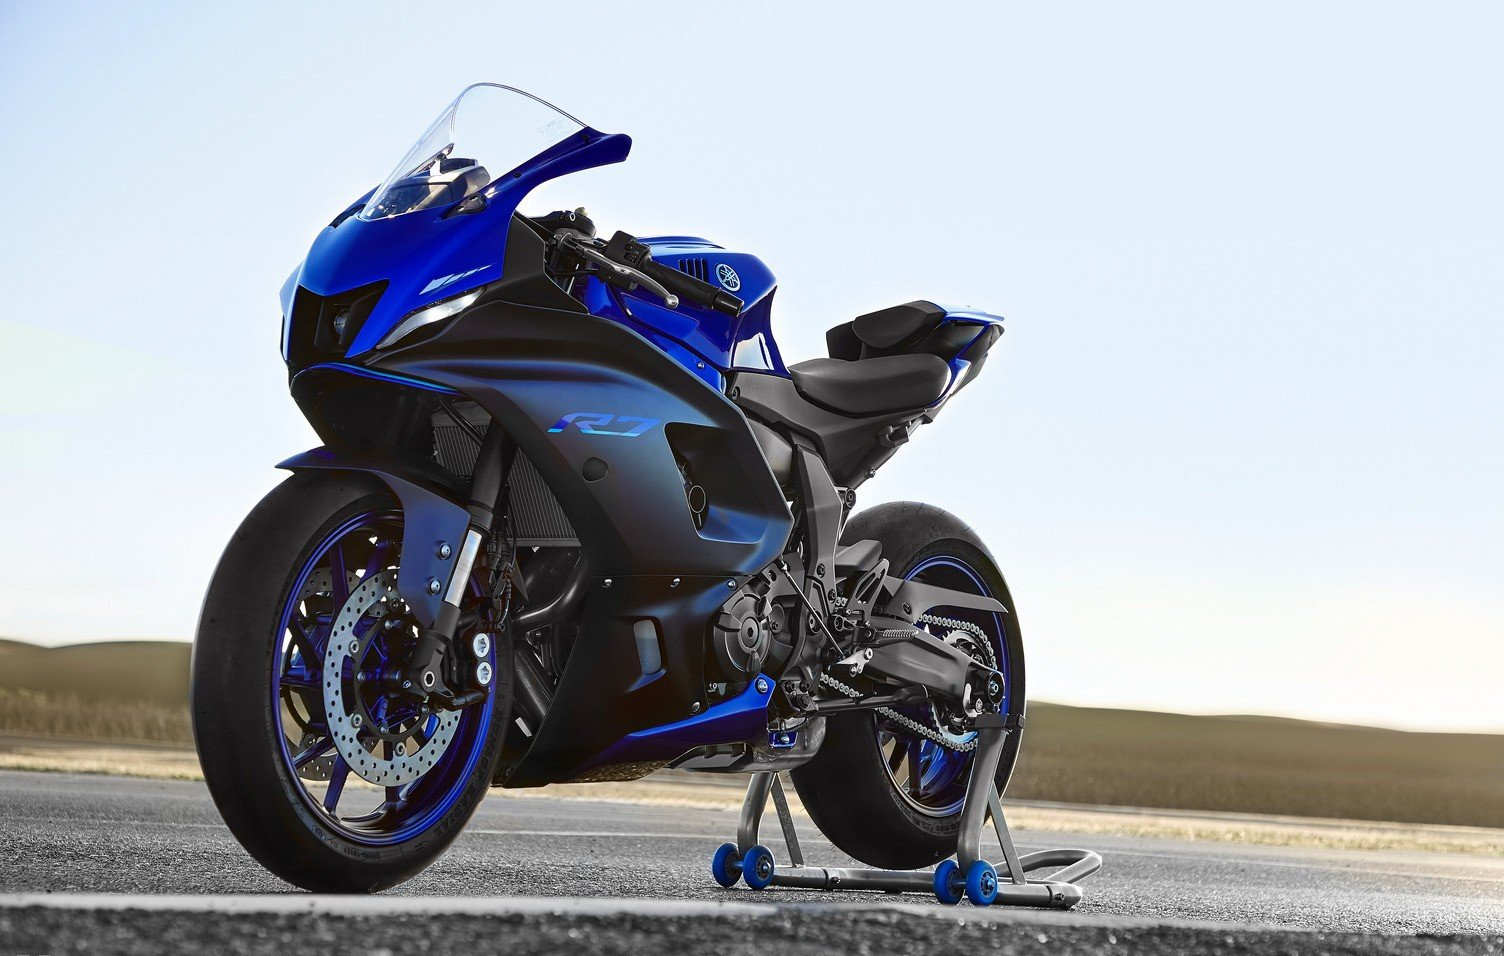 The Wraps Are Off: Yamaha Unveils The New 2022 YZF-R7